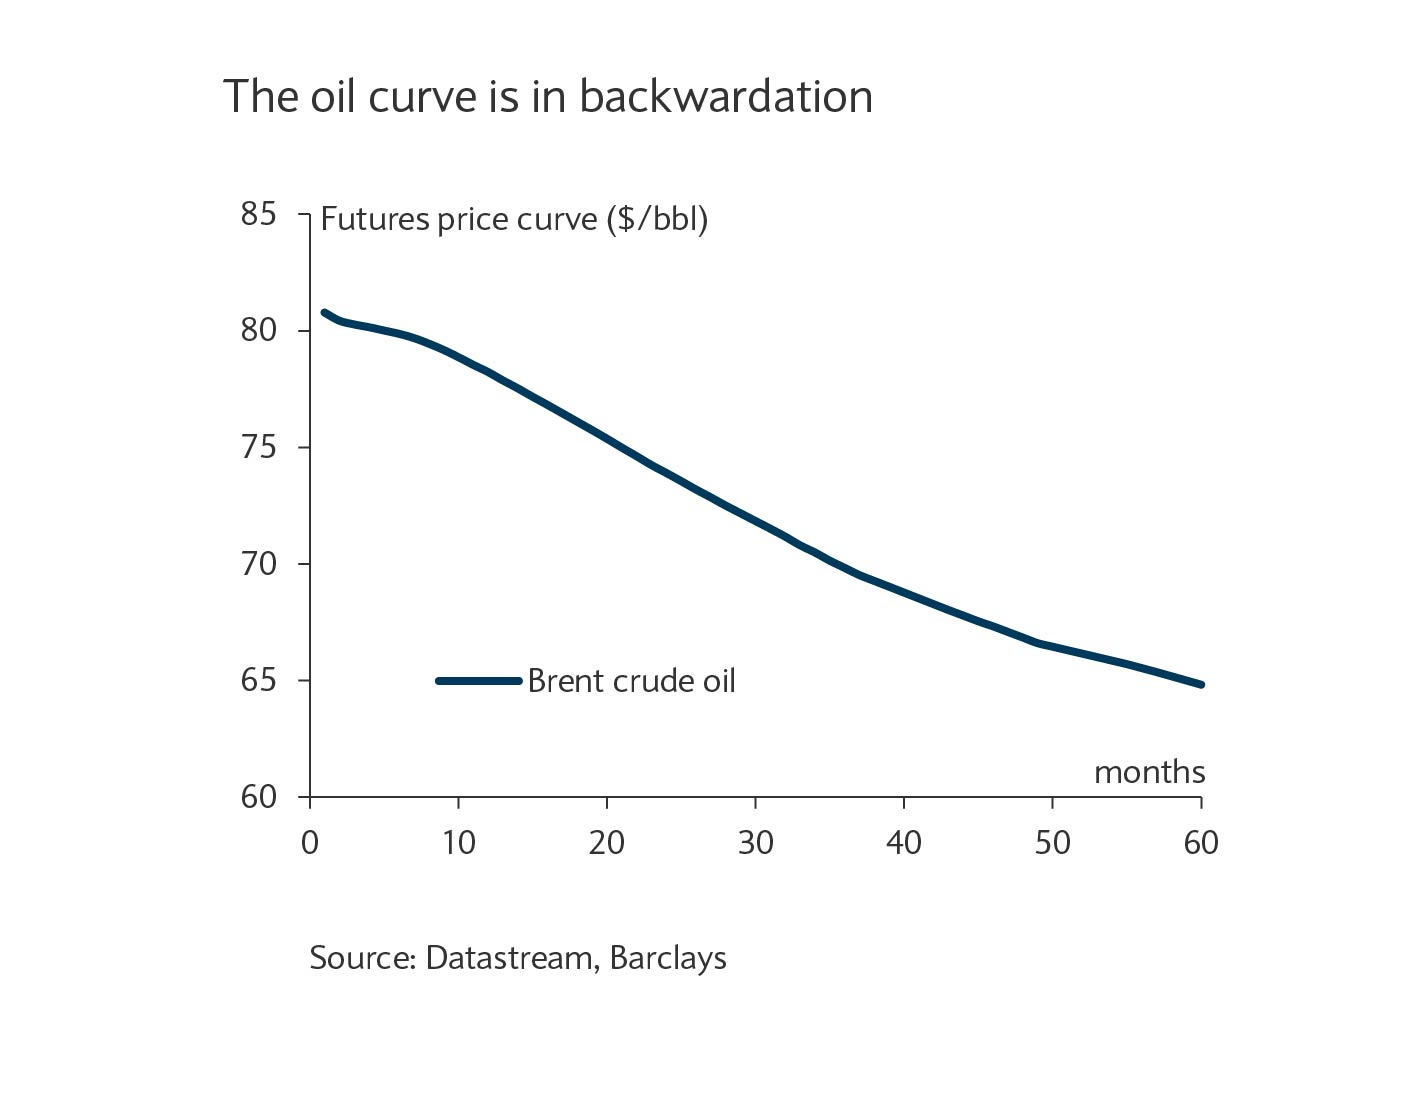 The oil curve is in backwardation